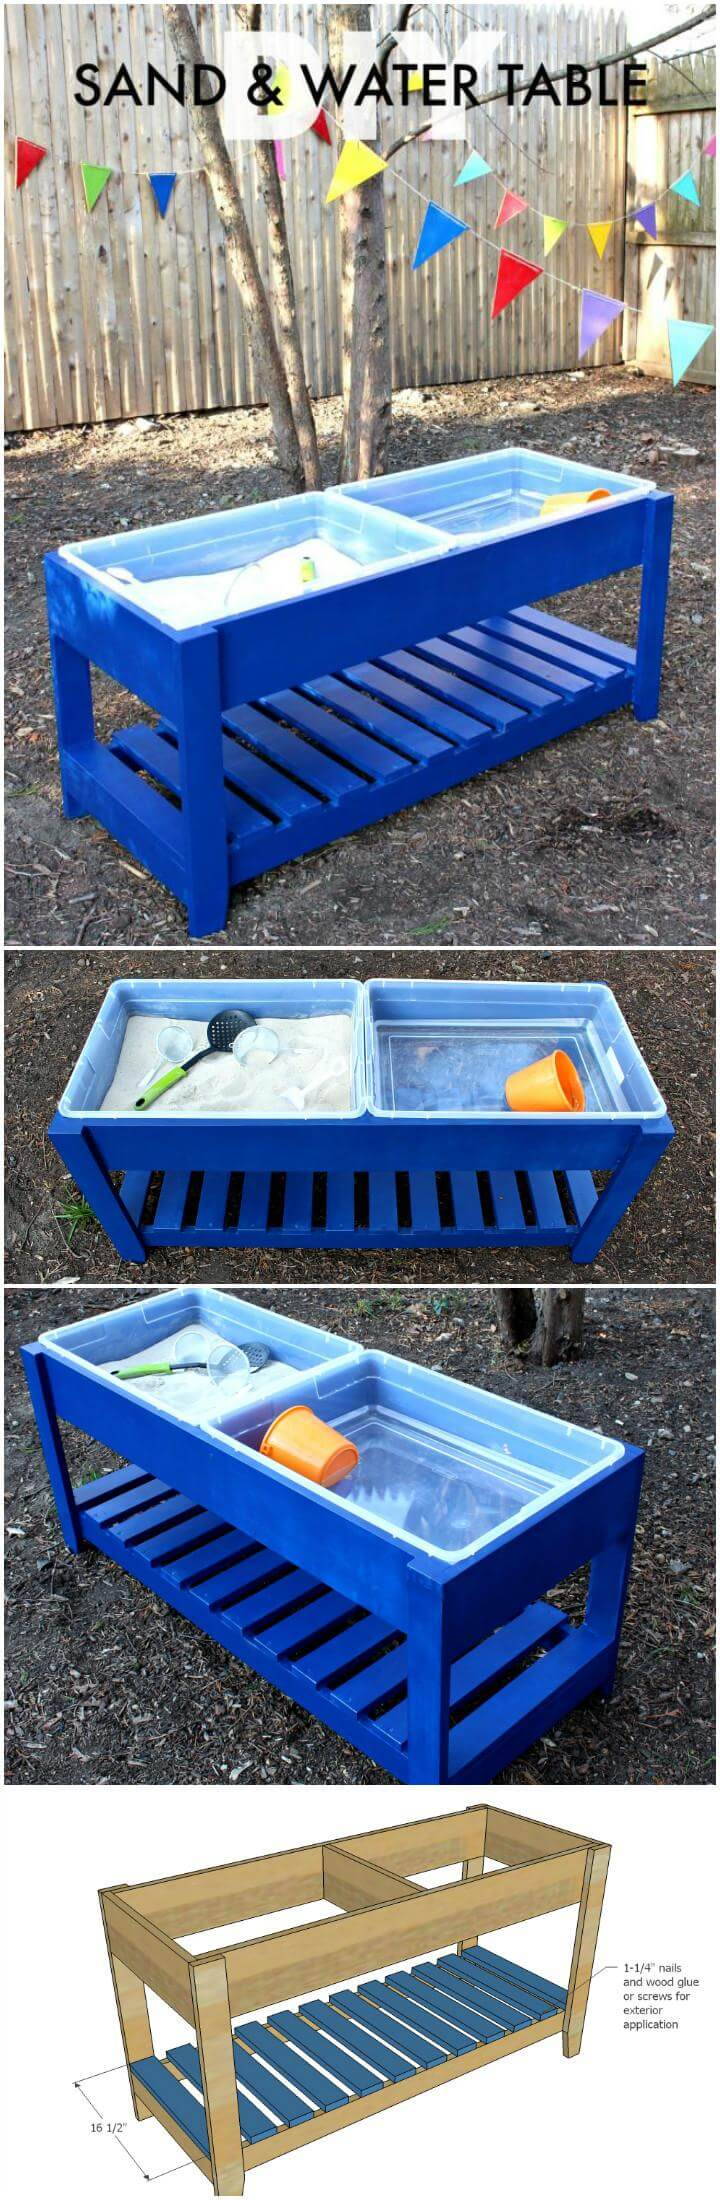 DIY Solid Wooden Sand and Water Table